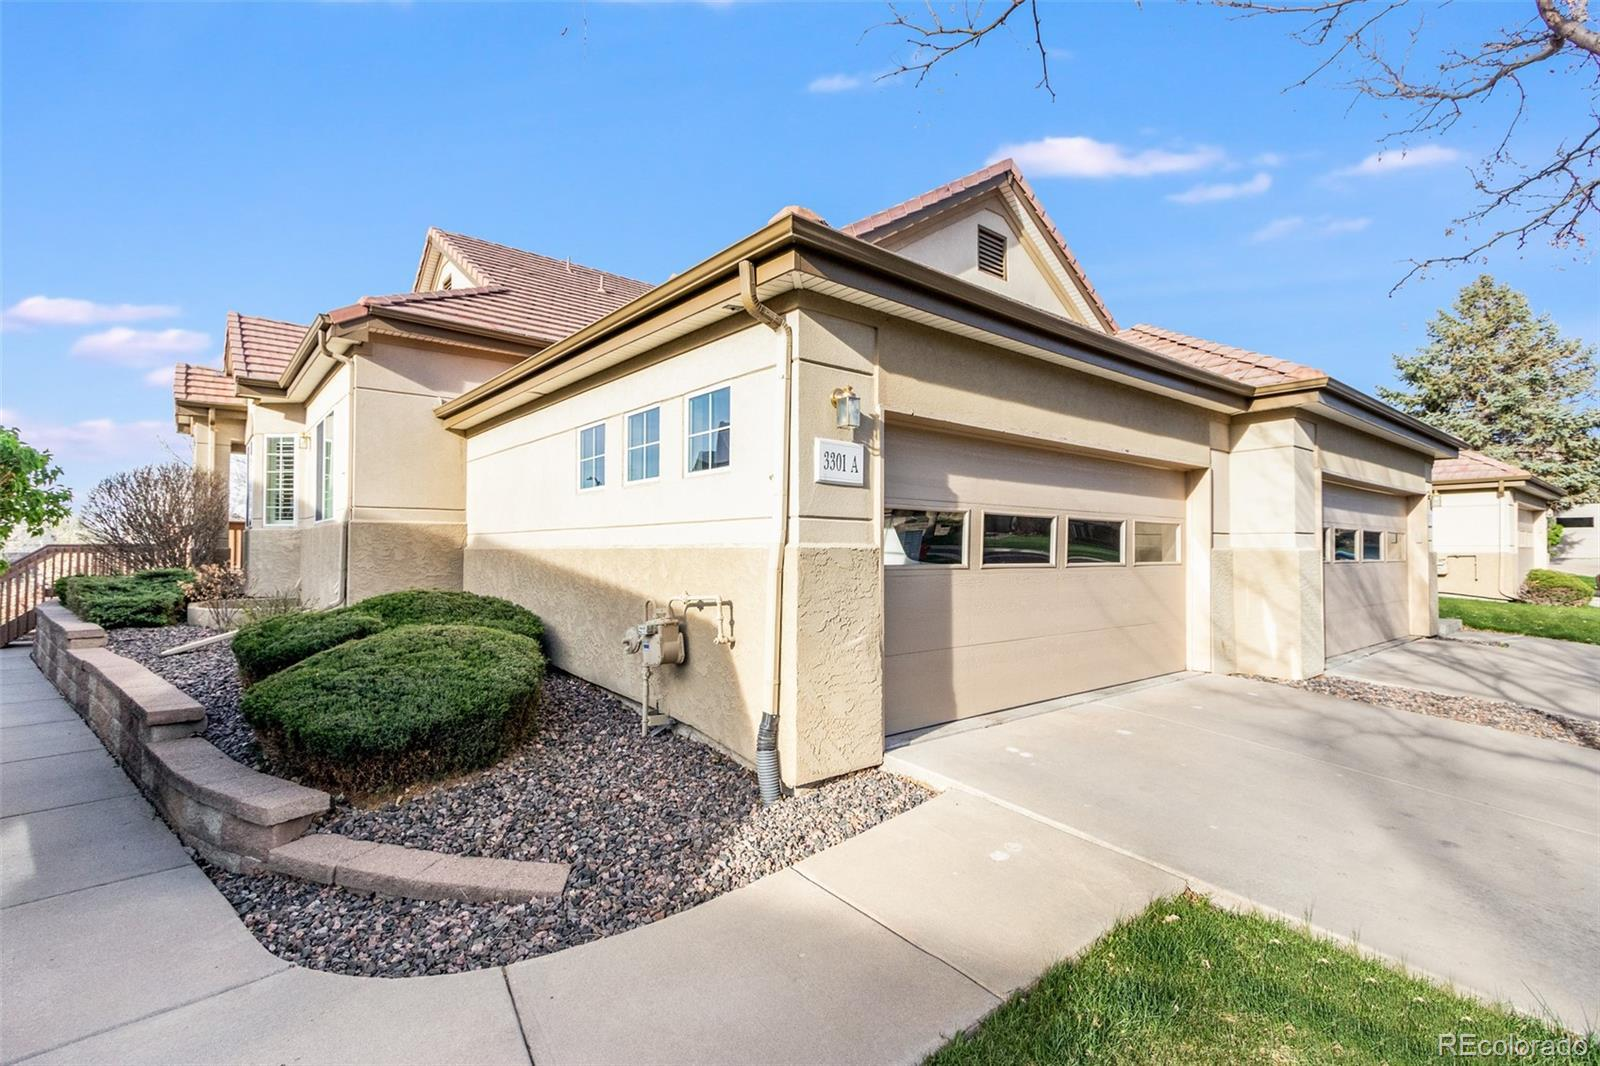 3301 W 111th Loop #A, Westminster, CO 80031 - #: 6836221